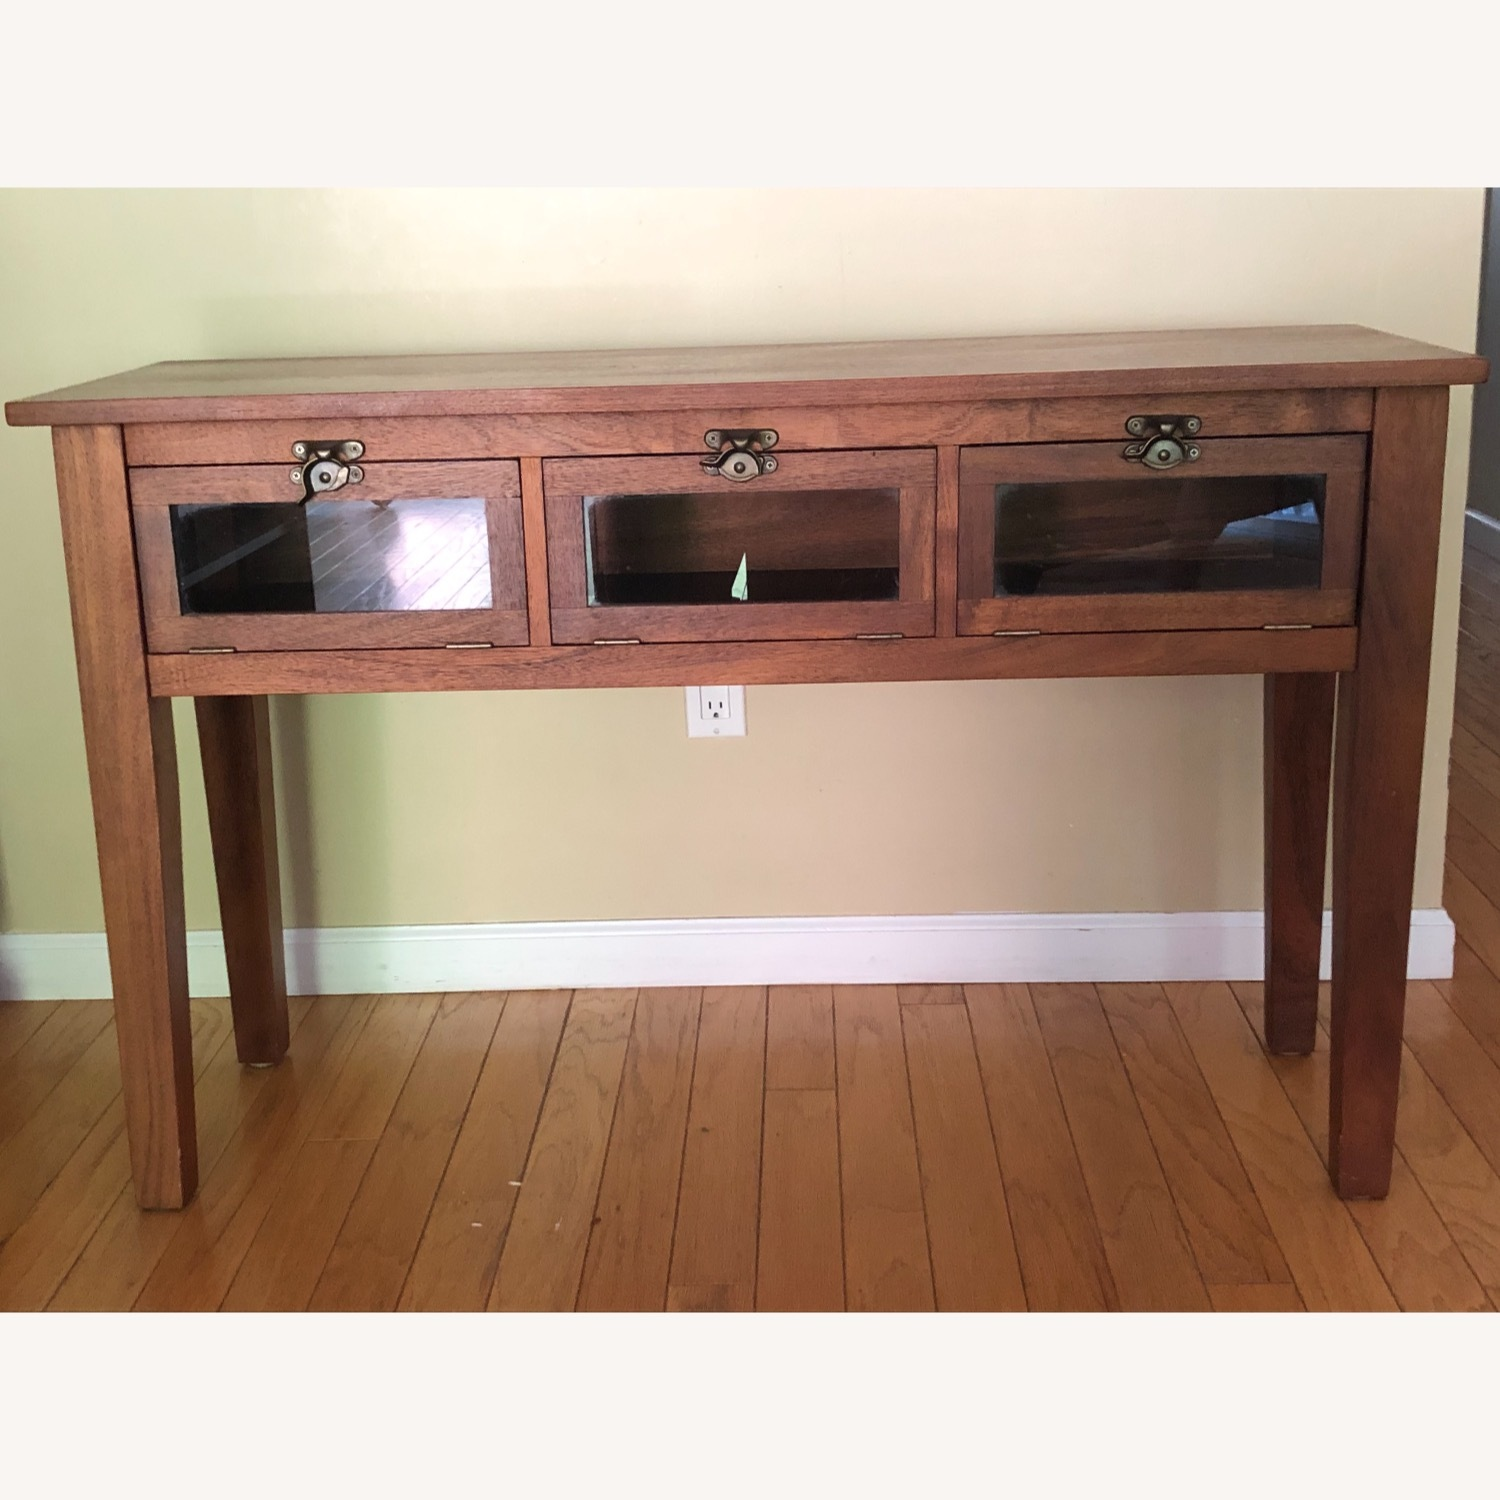 Pottery Barn Buffet / Sideboard with Glass Front Doors - image-1